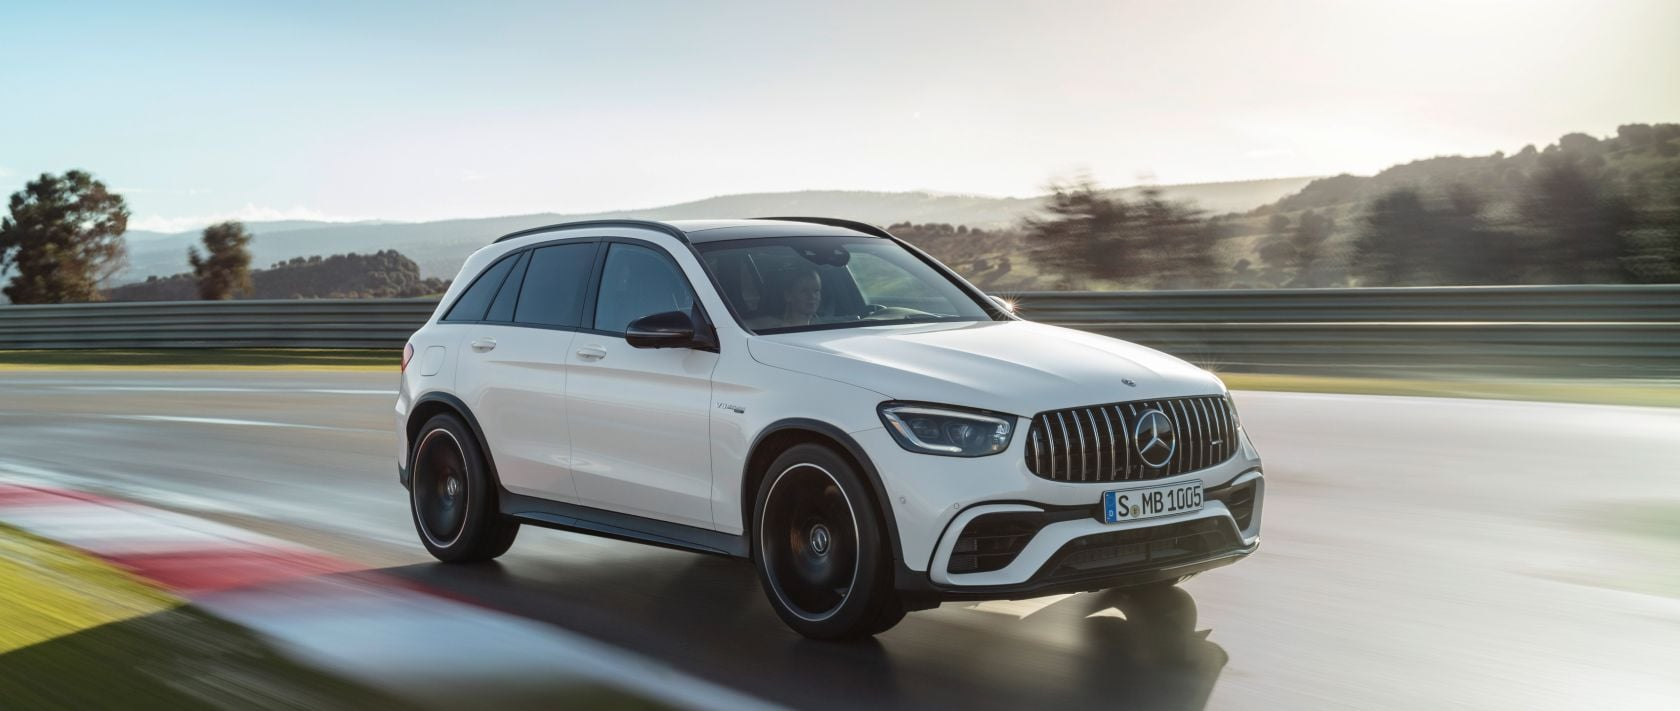 Front view of the new 2019 Mercedes-AMG GLC 63 S 4MATIC+ (X 253) in designo diamond white bright on a country road.